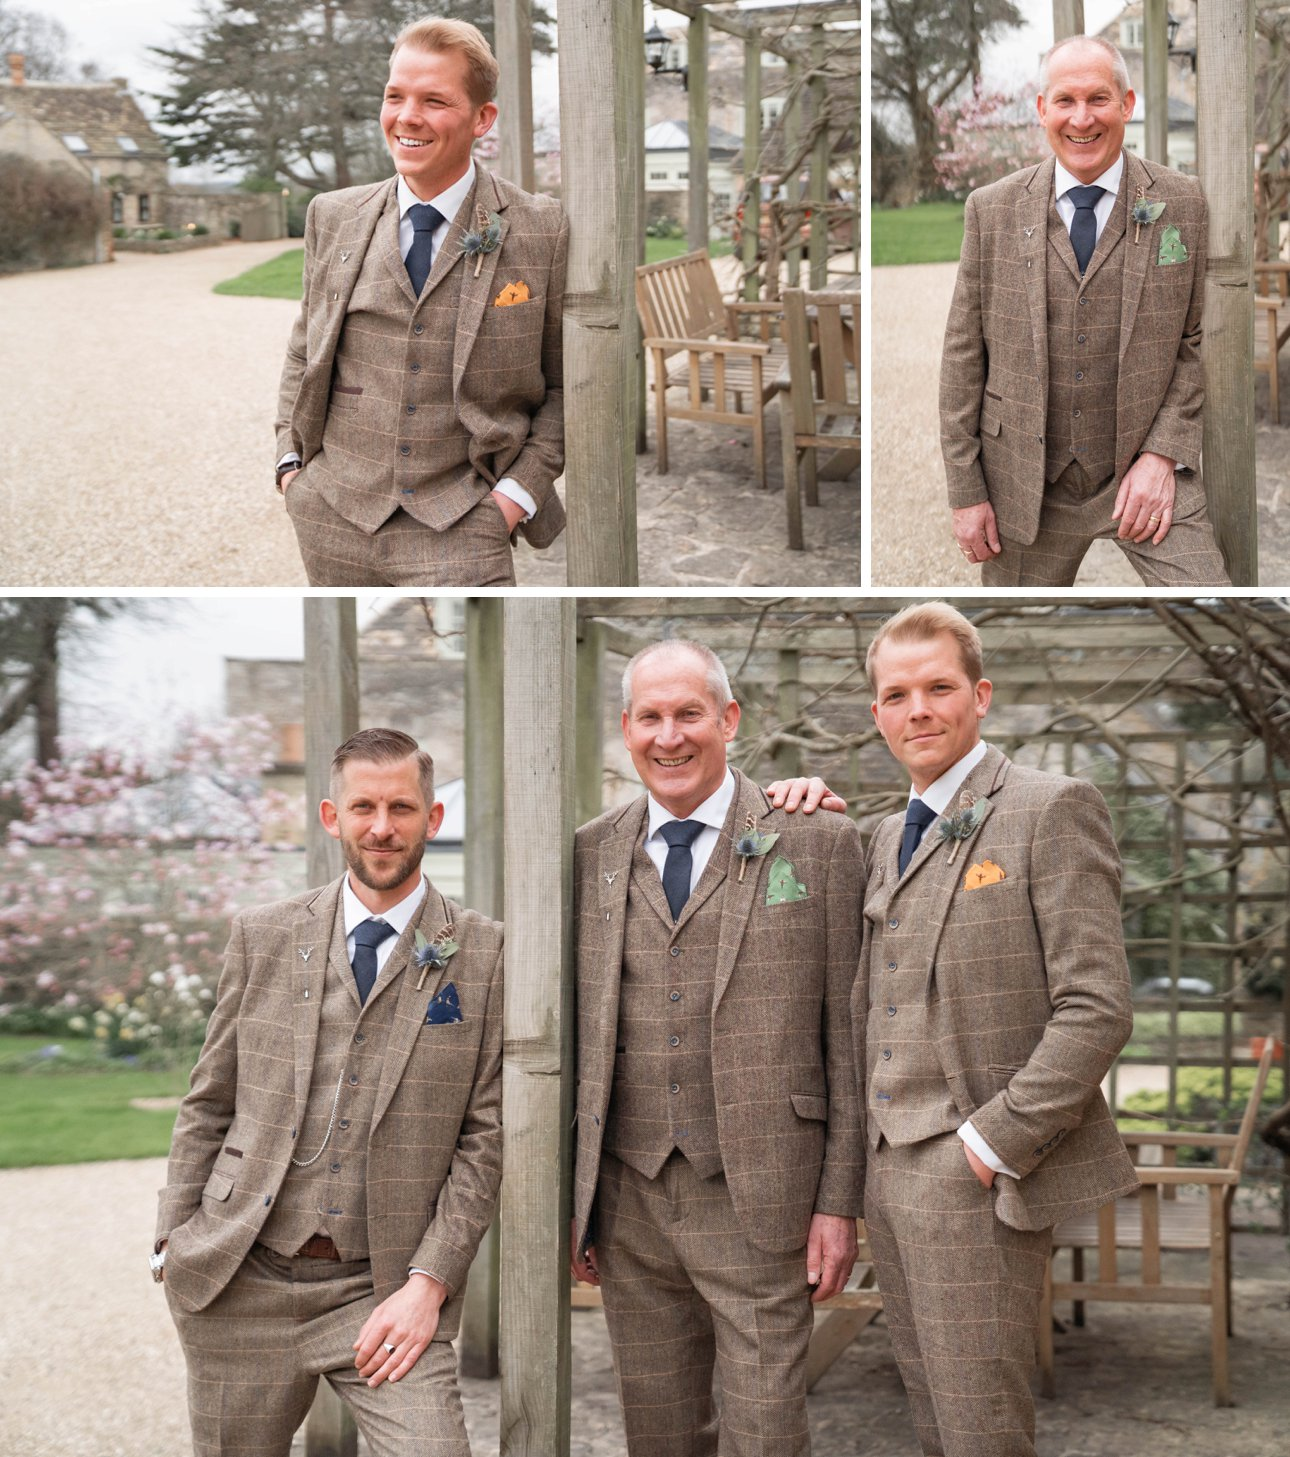 Tythe Barn Tetbury weddings - groom and groomsmen photo on the wedding morning. Photo by photographer Natalie Chiverton, who was a second shooter, allow photos to be taken of the groom getting ready while the main photographer captures the bride.